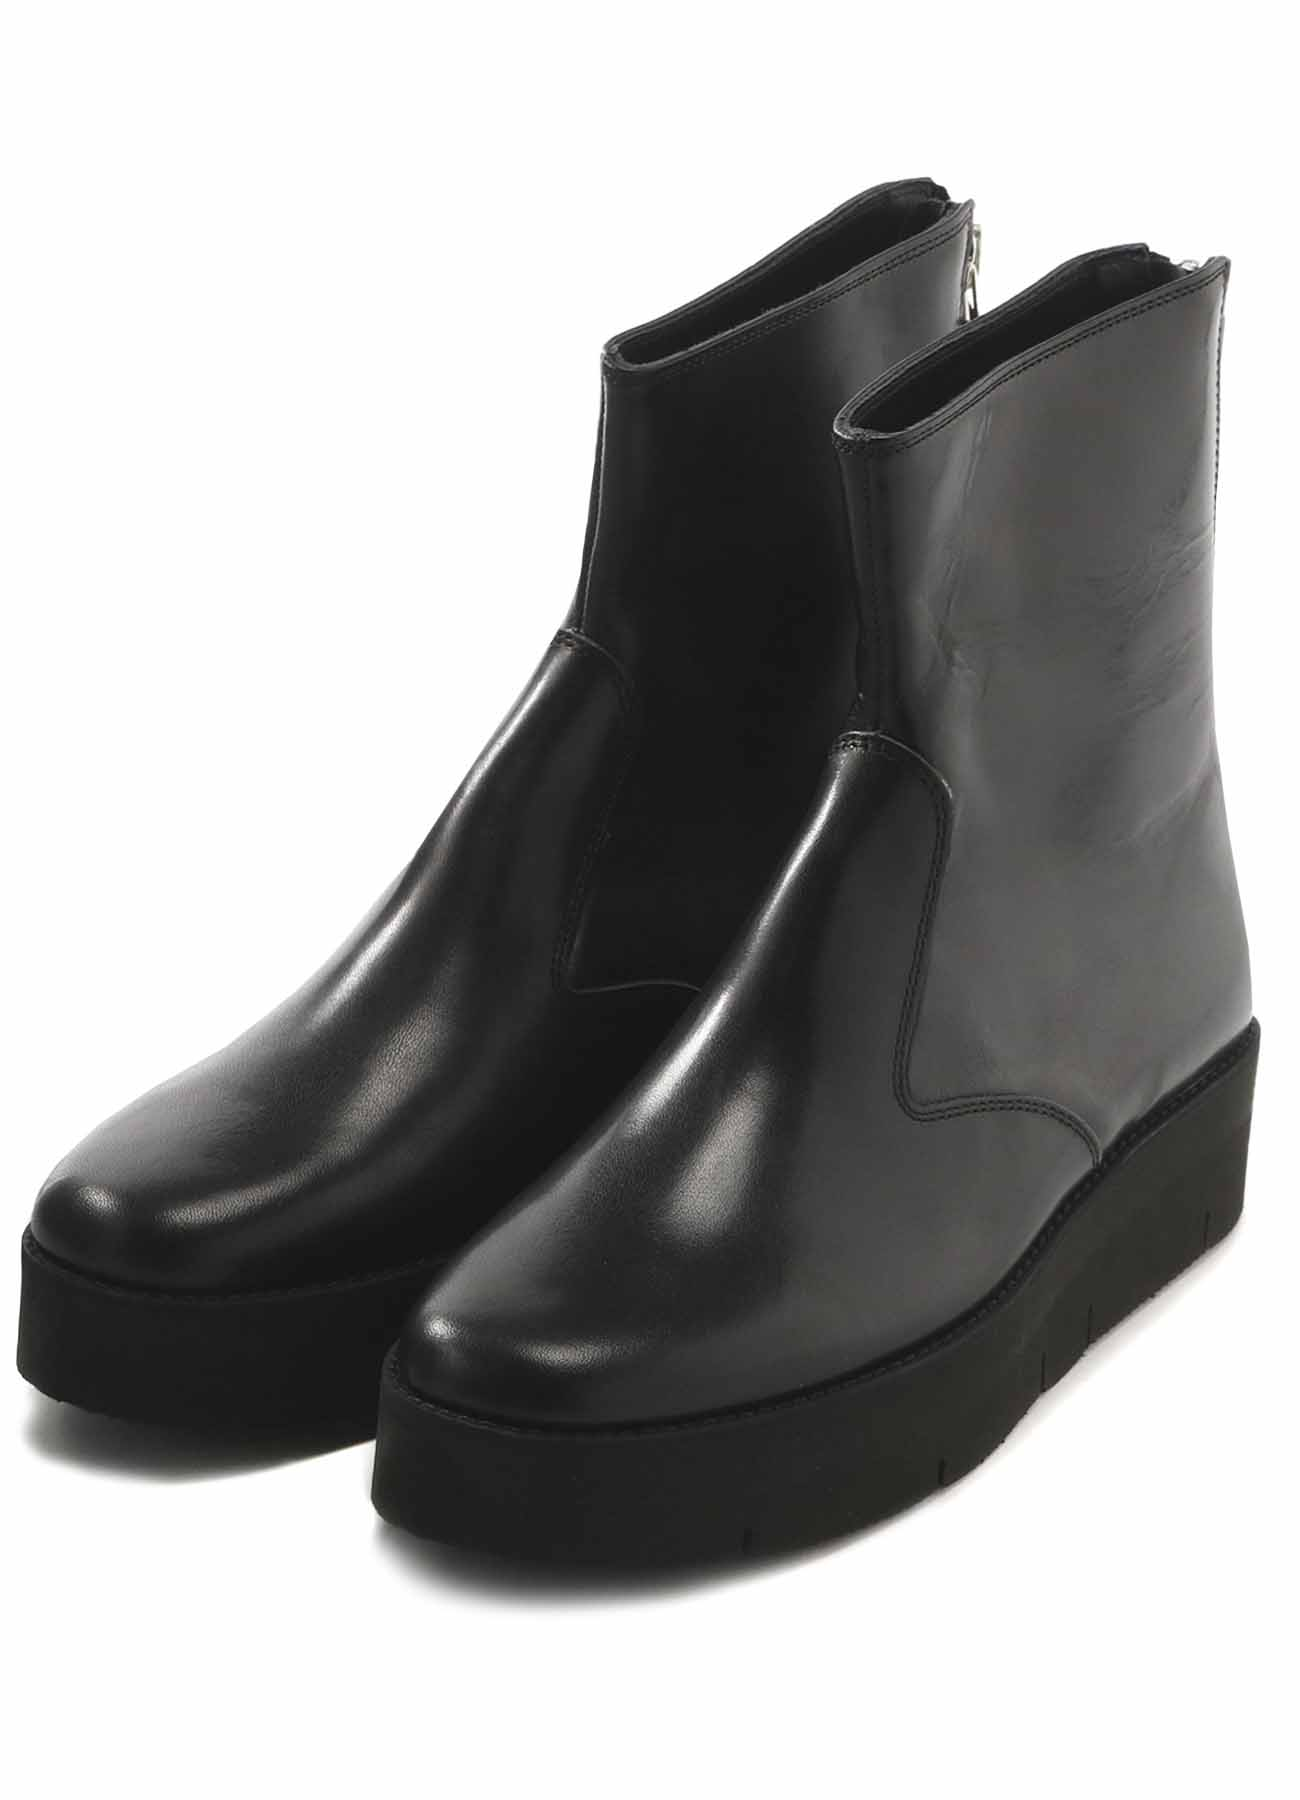 SHINING LEATHER BACK ZIP BOOTS